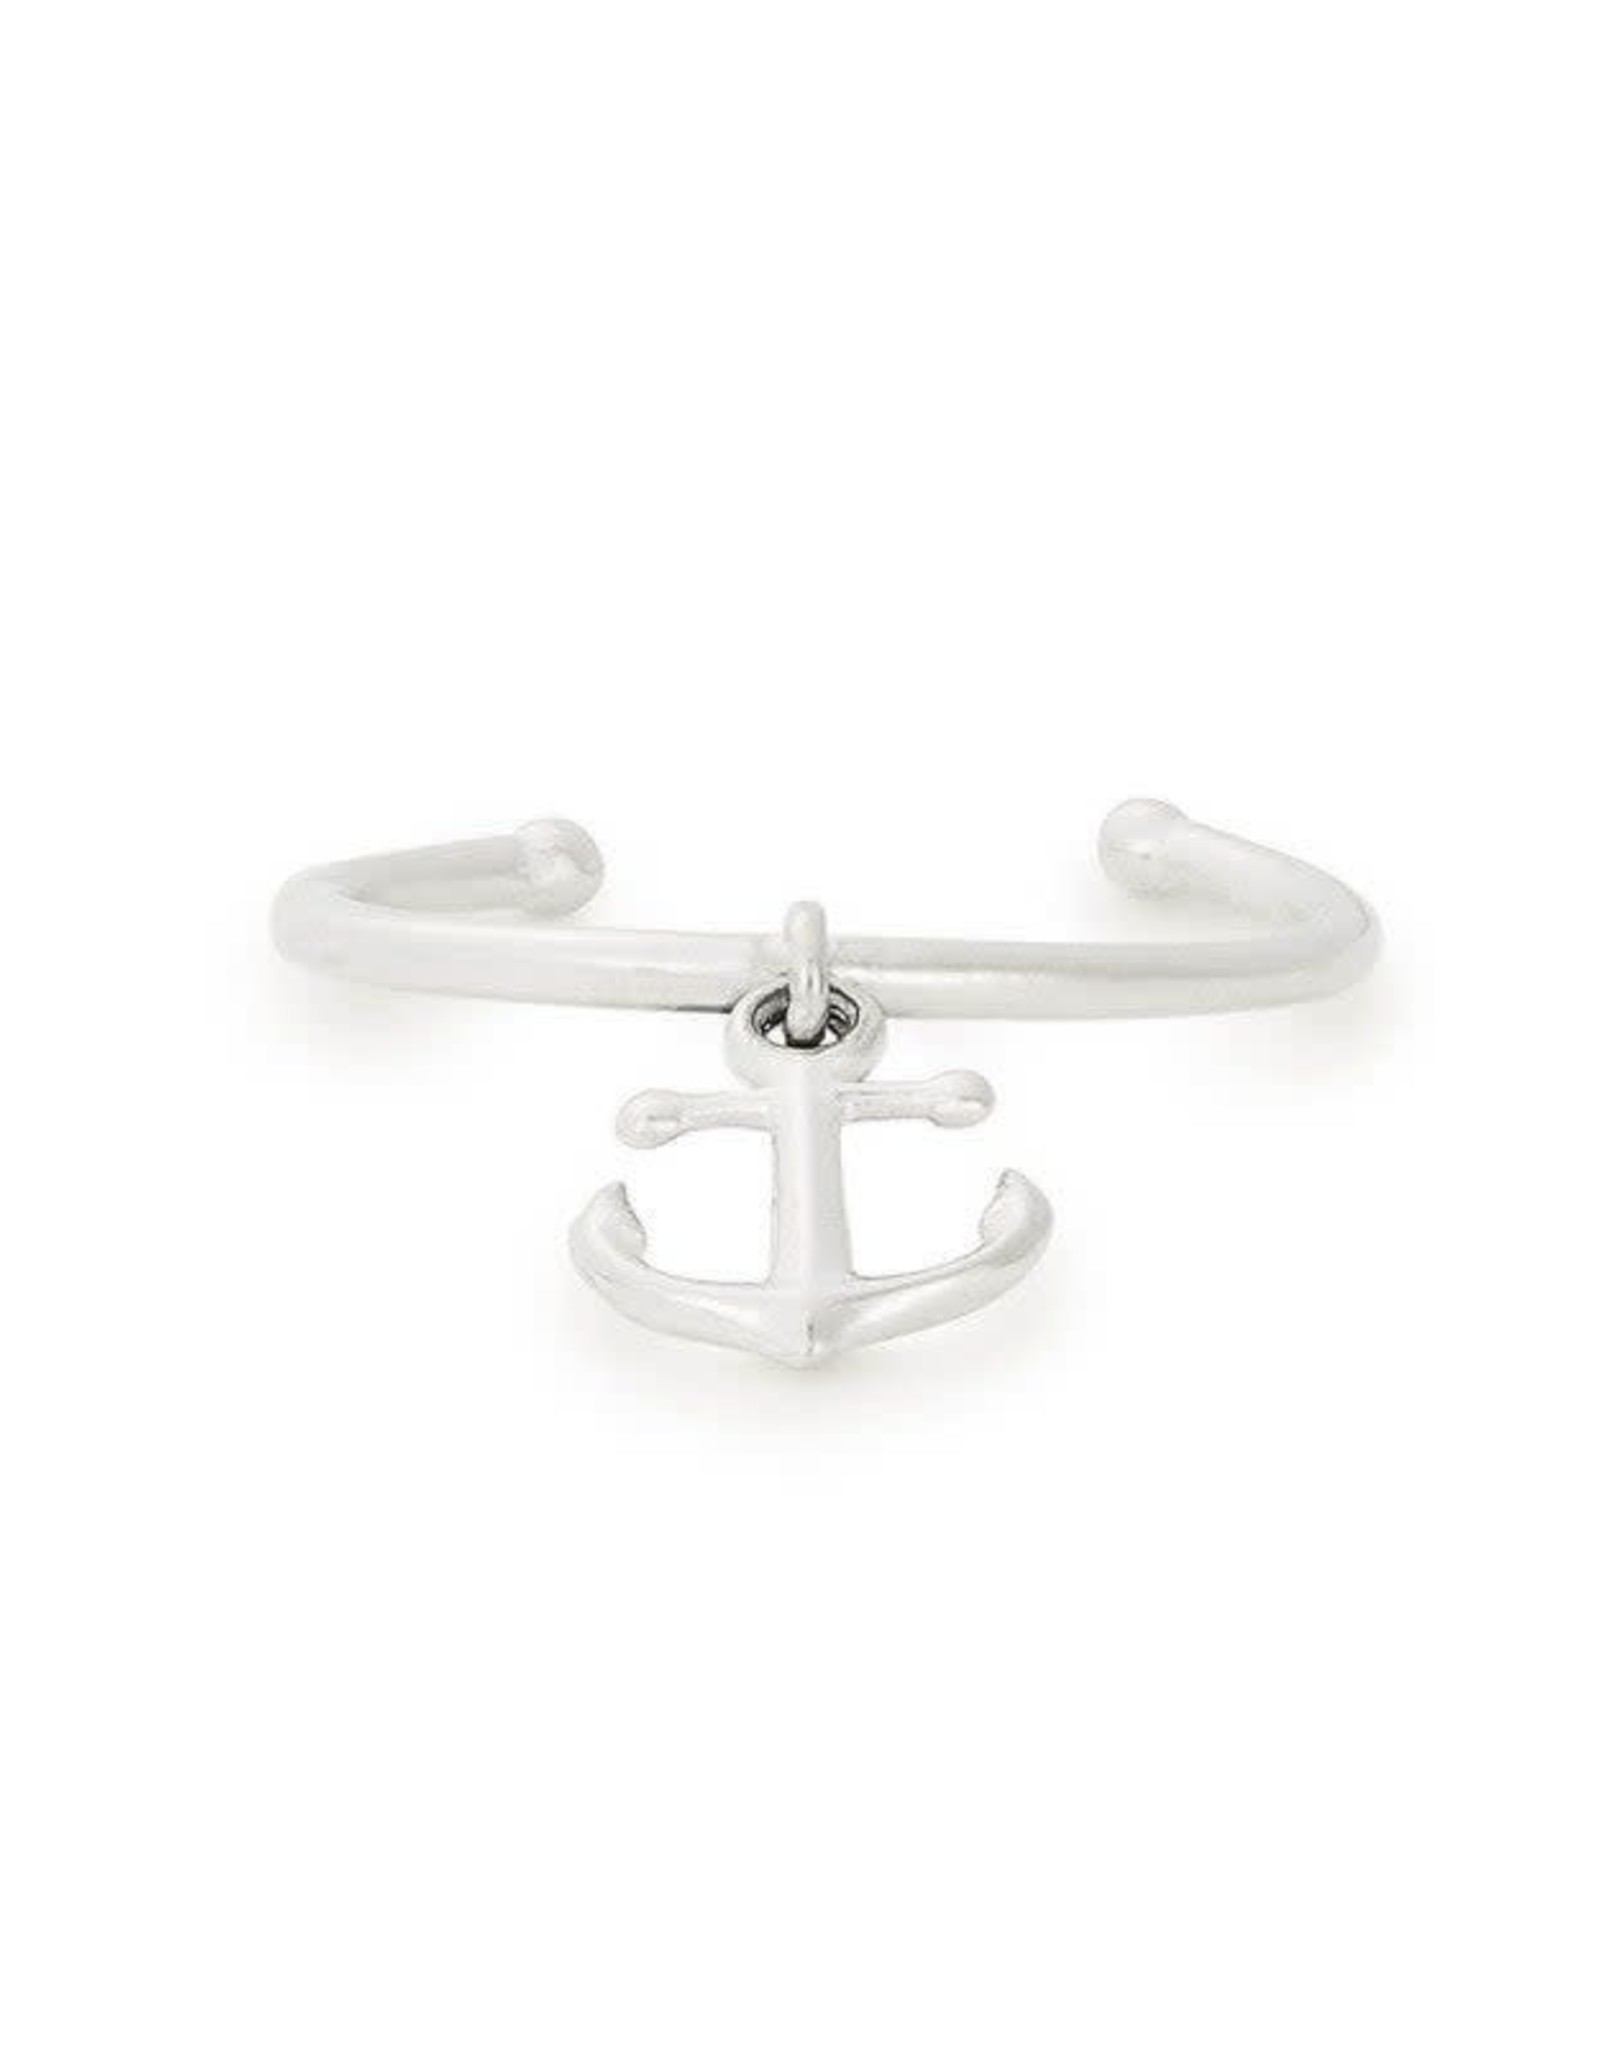 Alex and Ani Anchor Adjustable Ring, Sterling Silver FINAL SALE